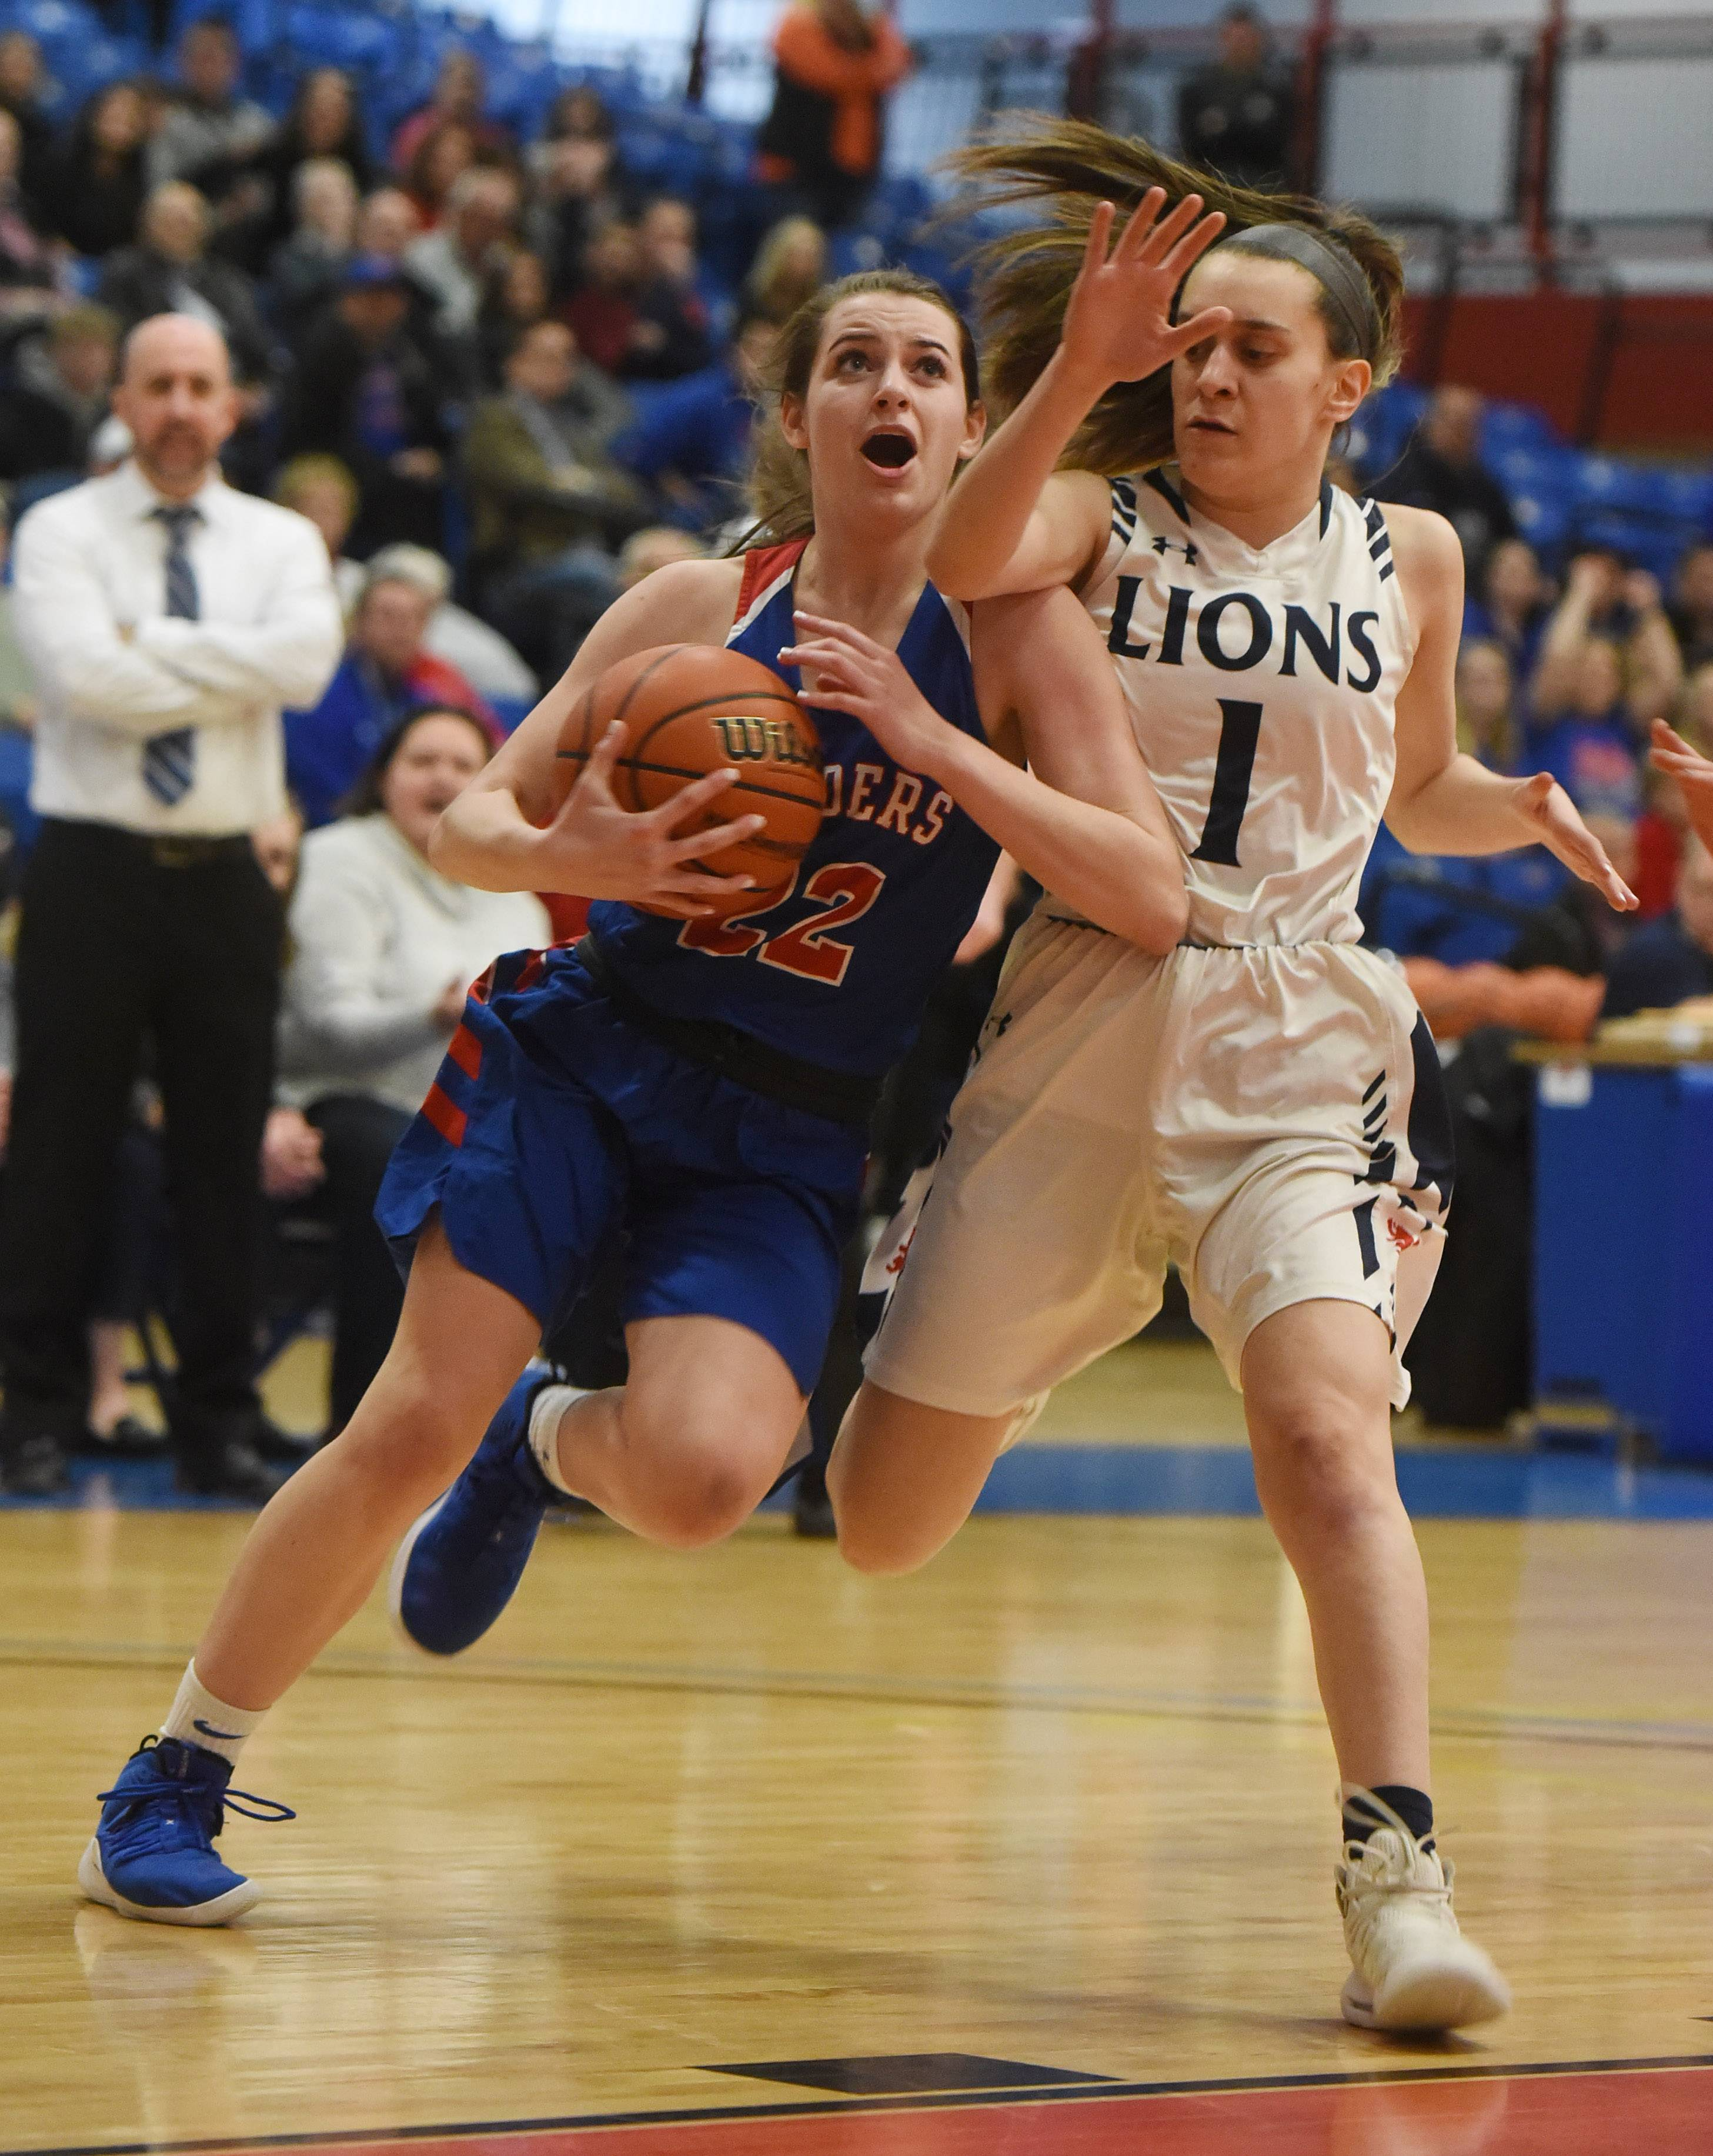 Glenbard South's Rocky LaPonte draws contact from St. Viator's Nora Ahram on her way to the basket during the Class 3A girls baskeball supersectional at Elgin Community College Monday.